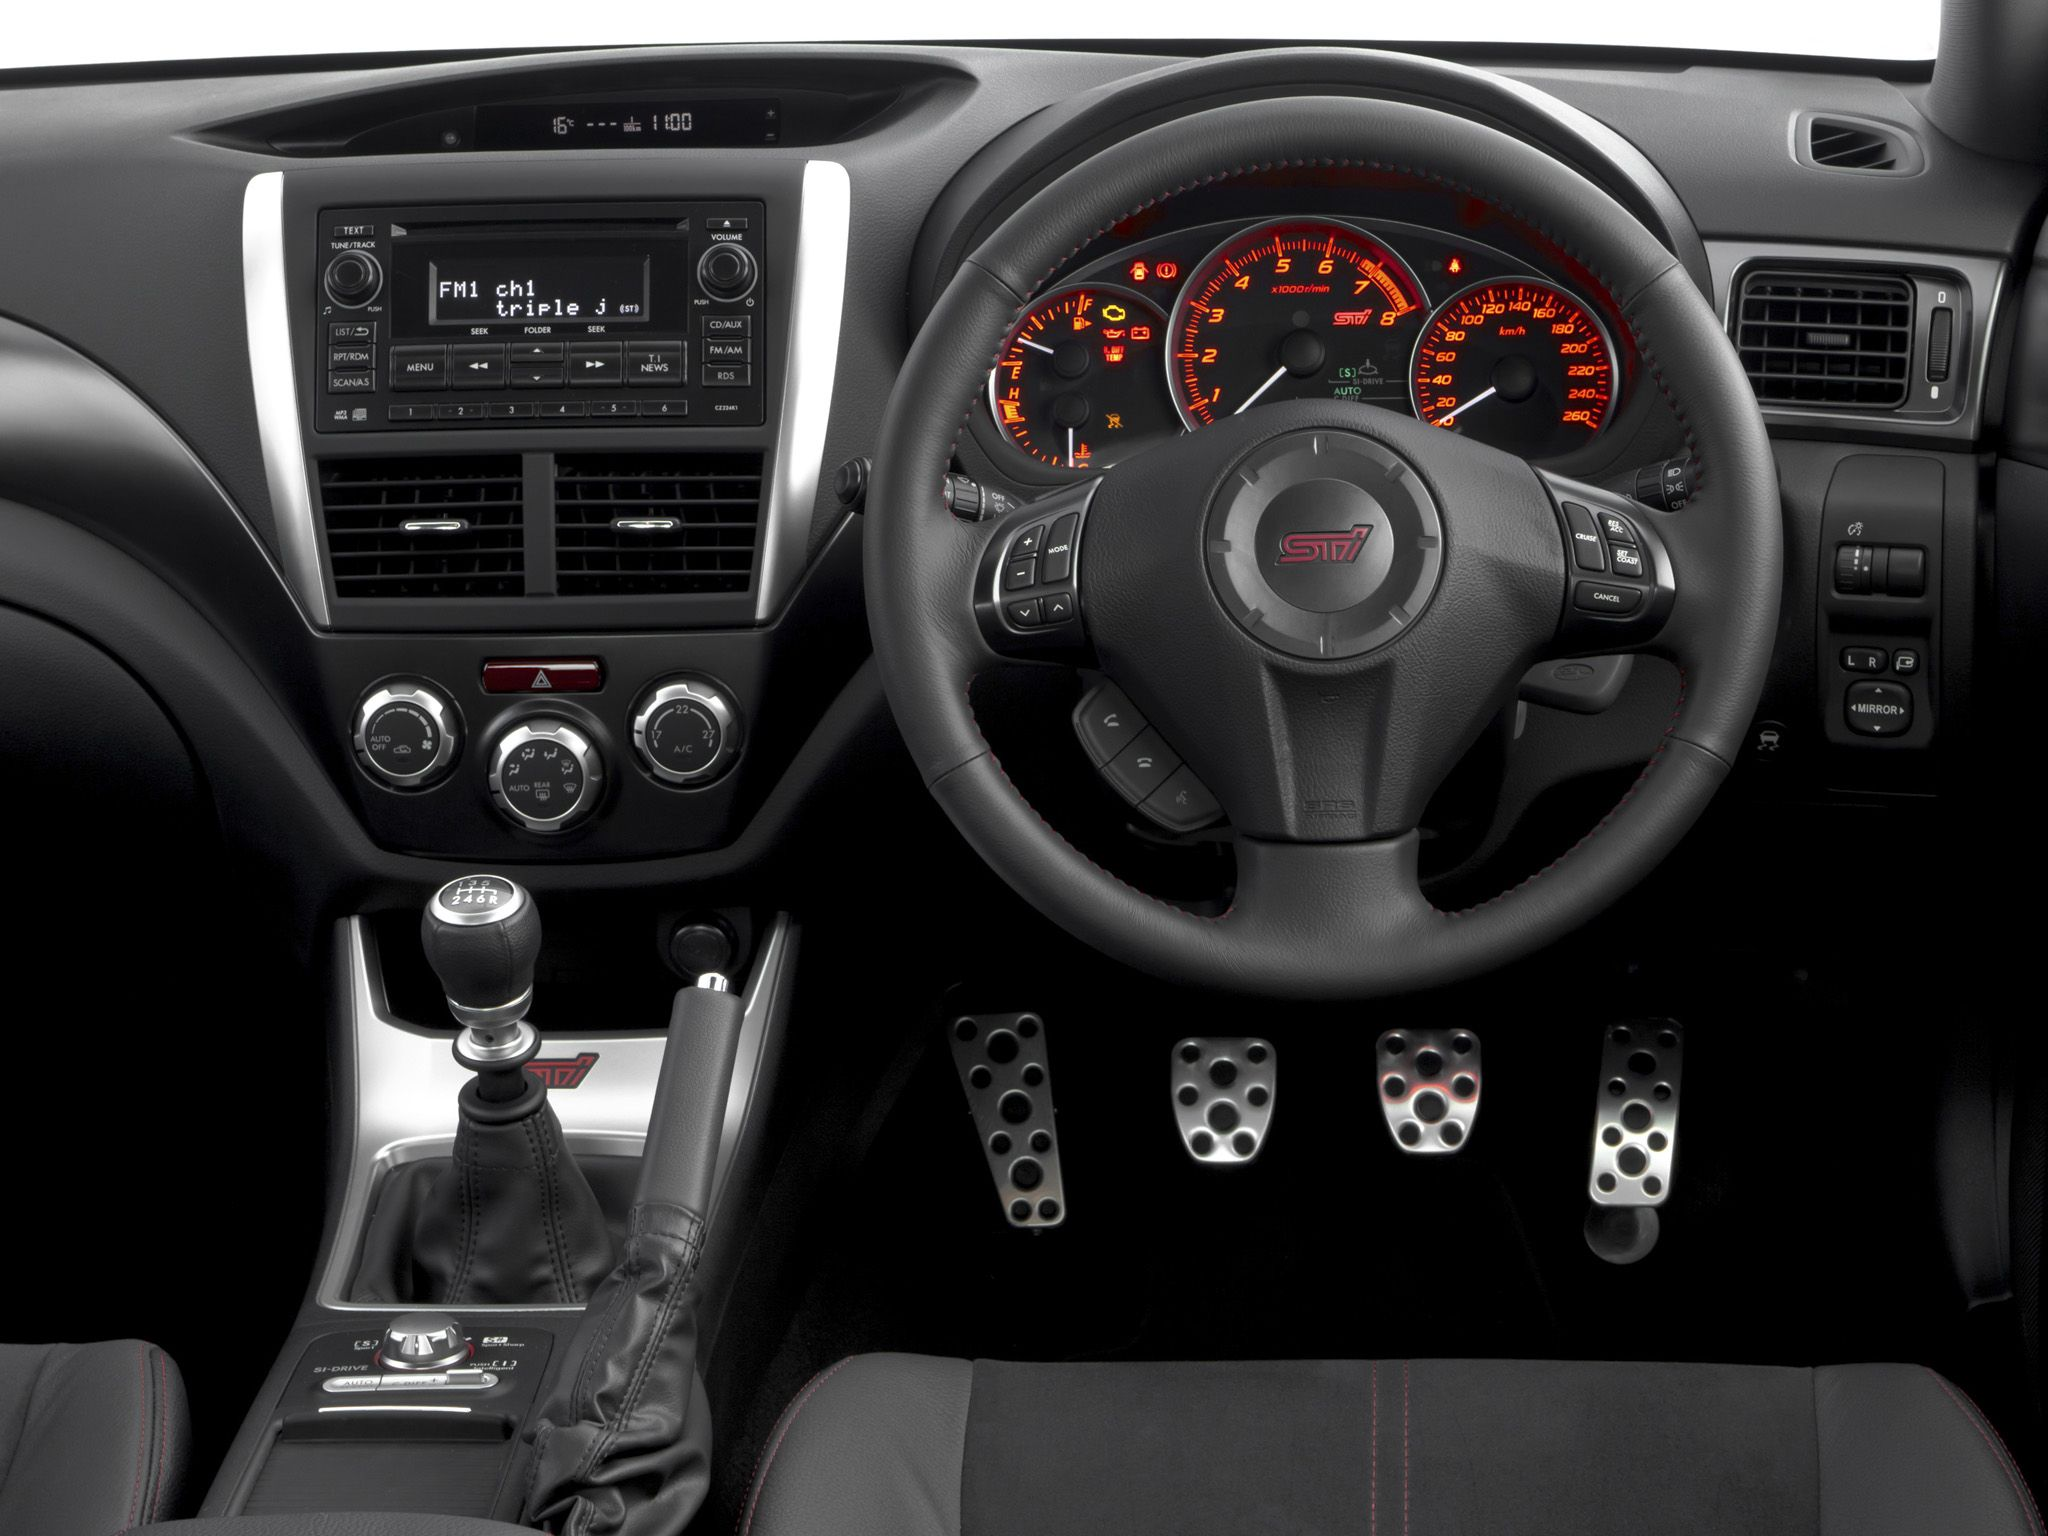 820dffbc133cecafb6de6e18fec7fedf Take A Look About 2002 Subaru Impreza Wrx Specs